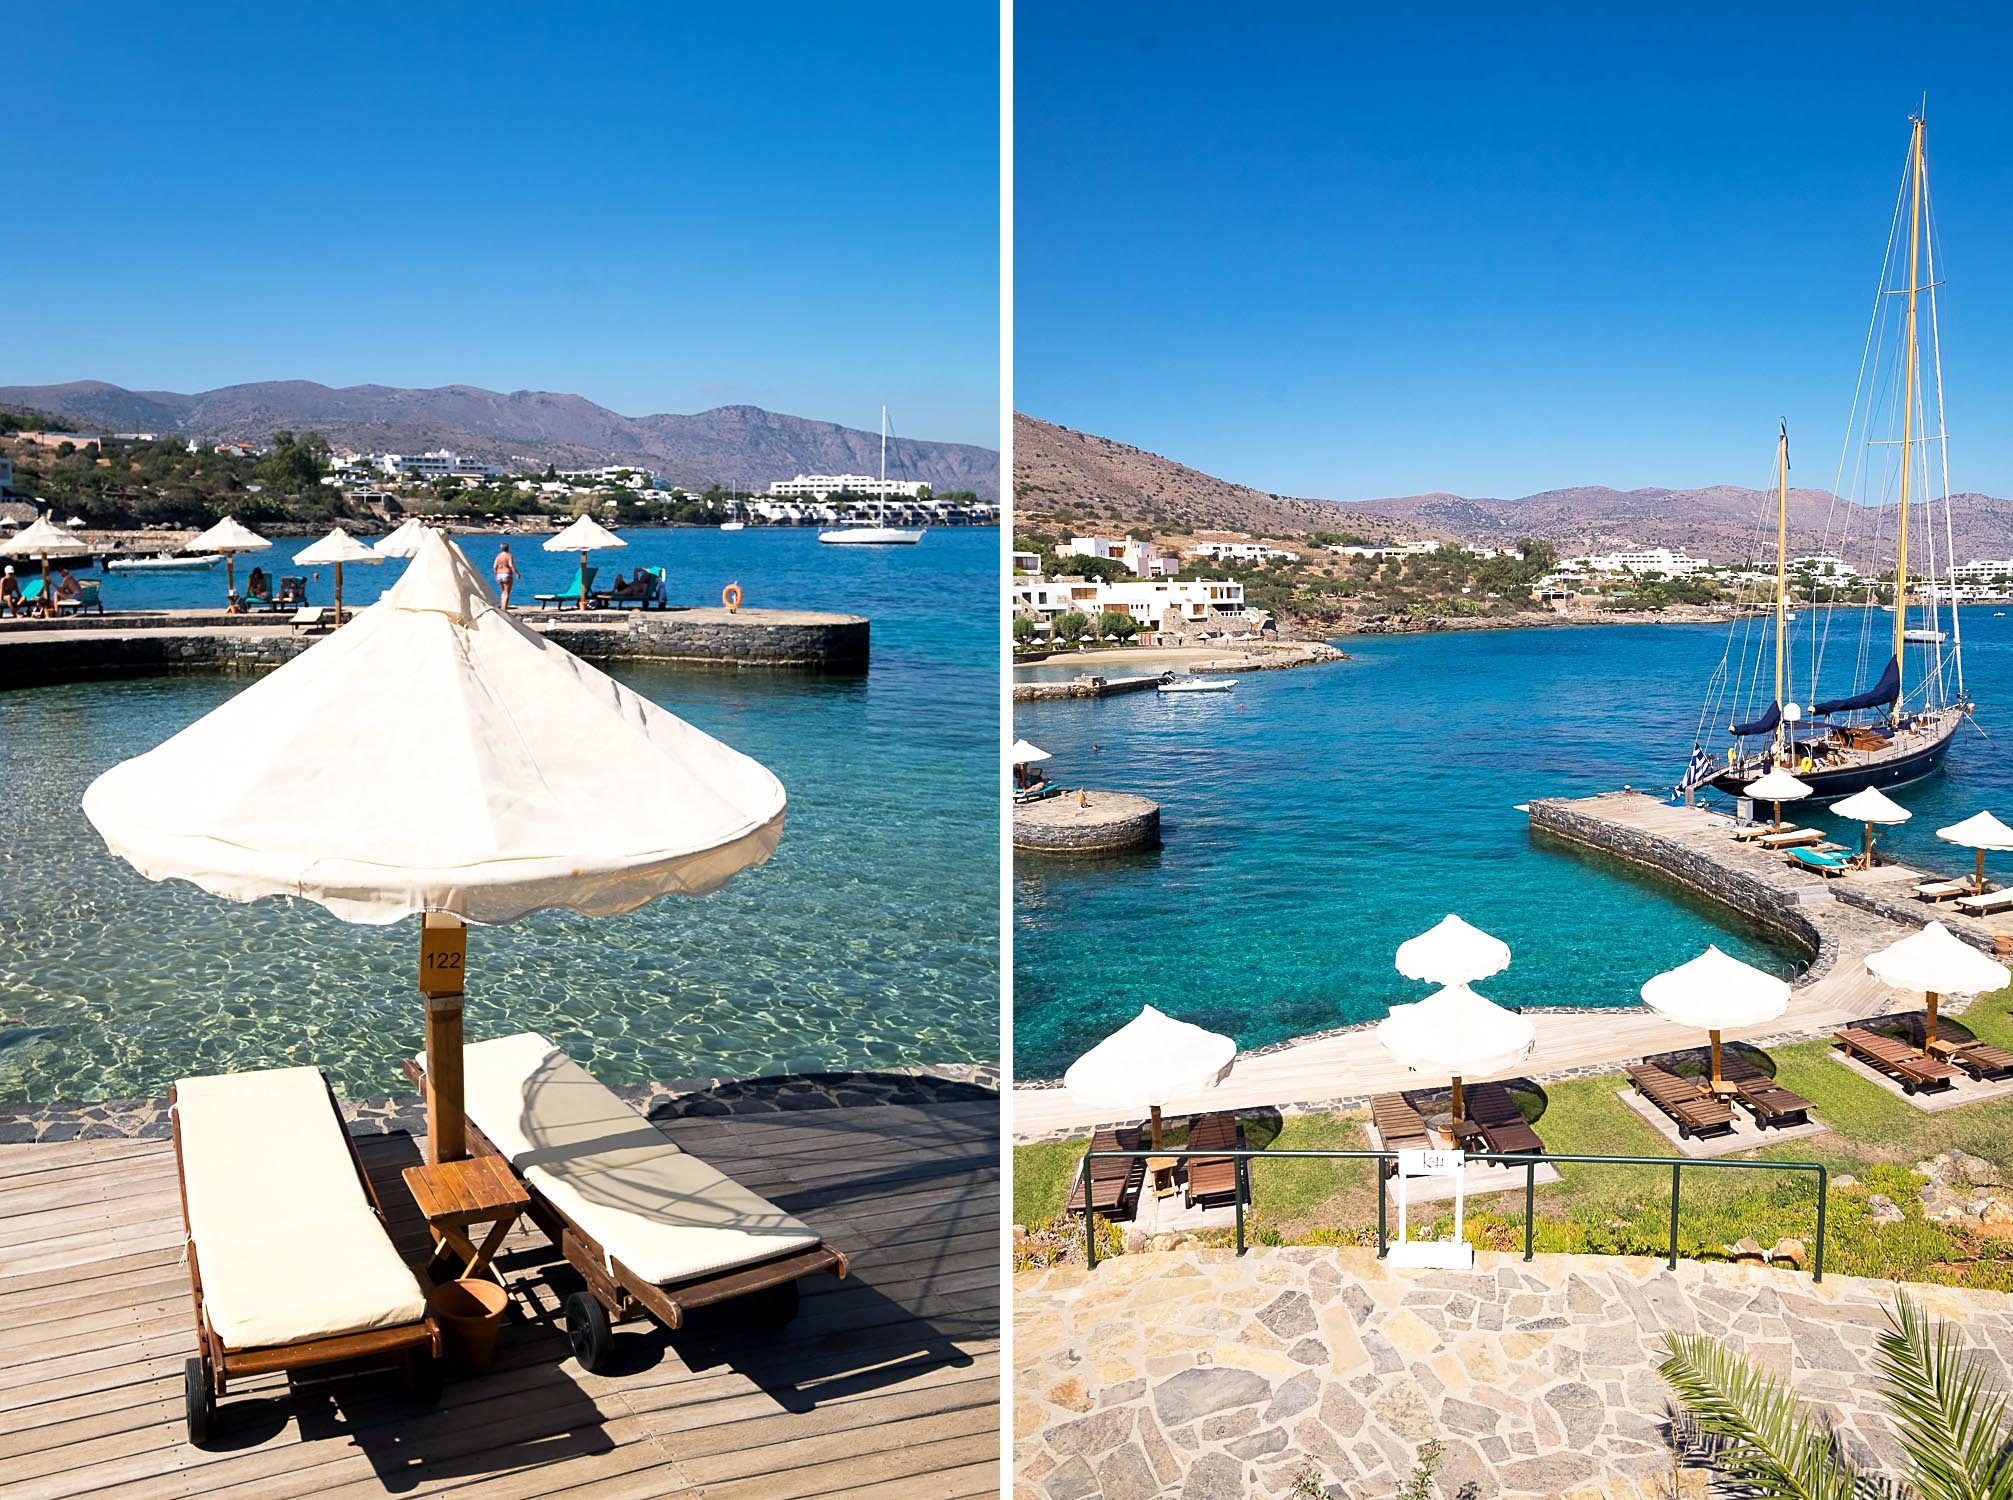 Escape to Crete for a Luxury Summer Holiday at Elounda Peninsula